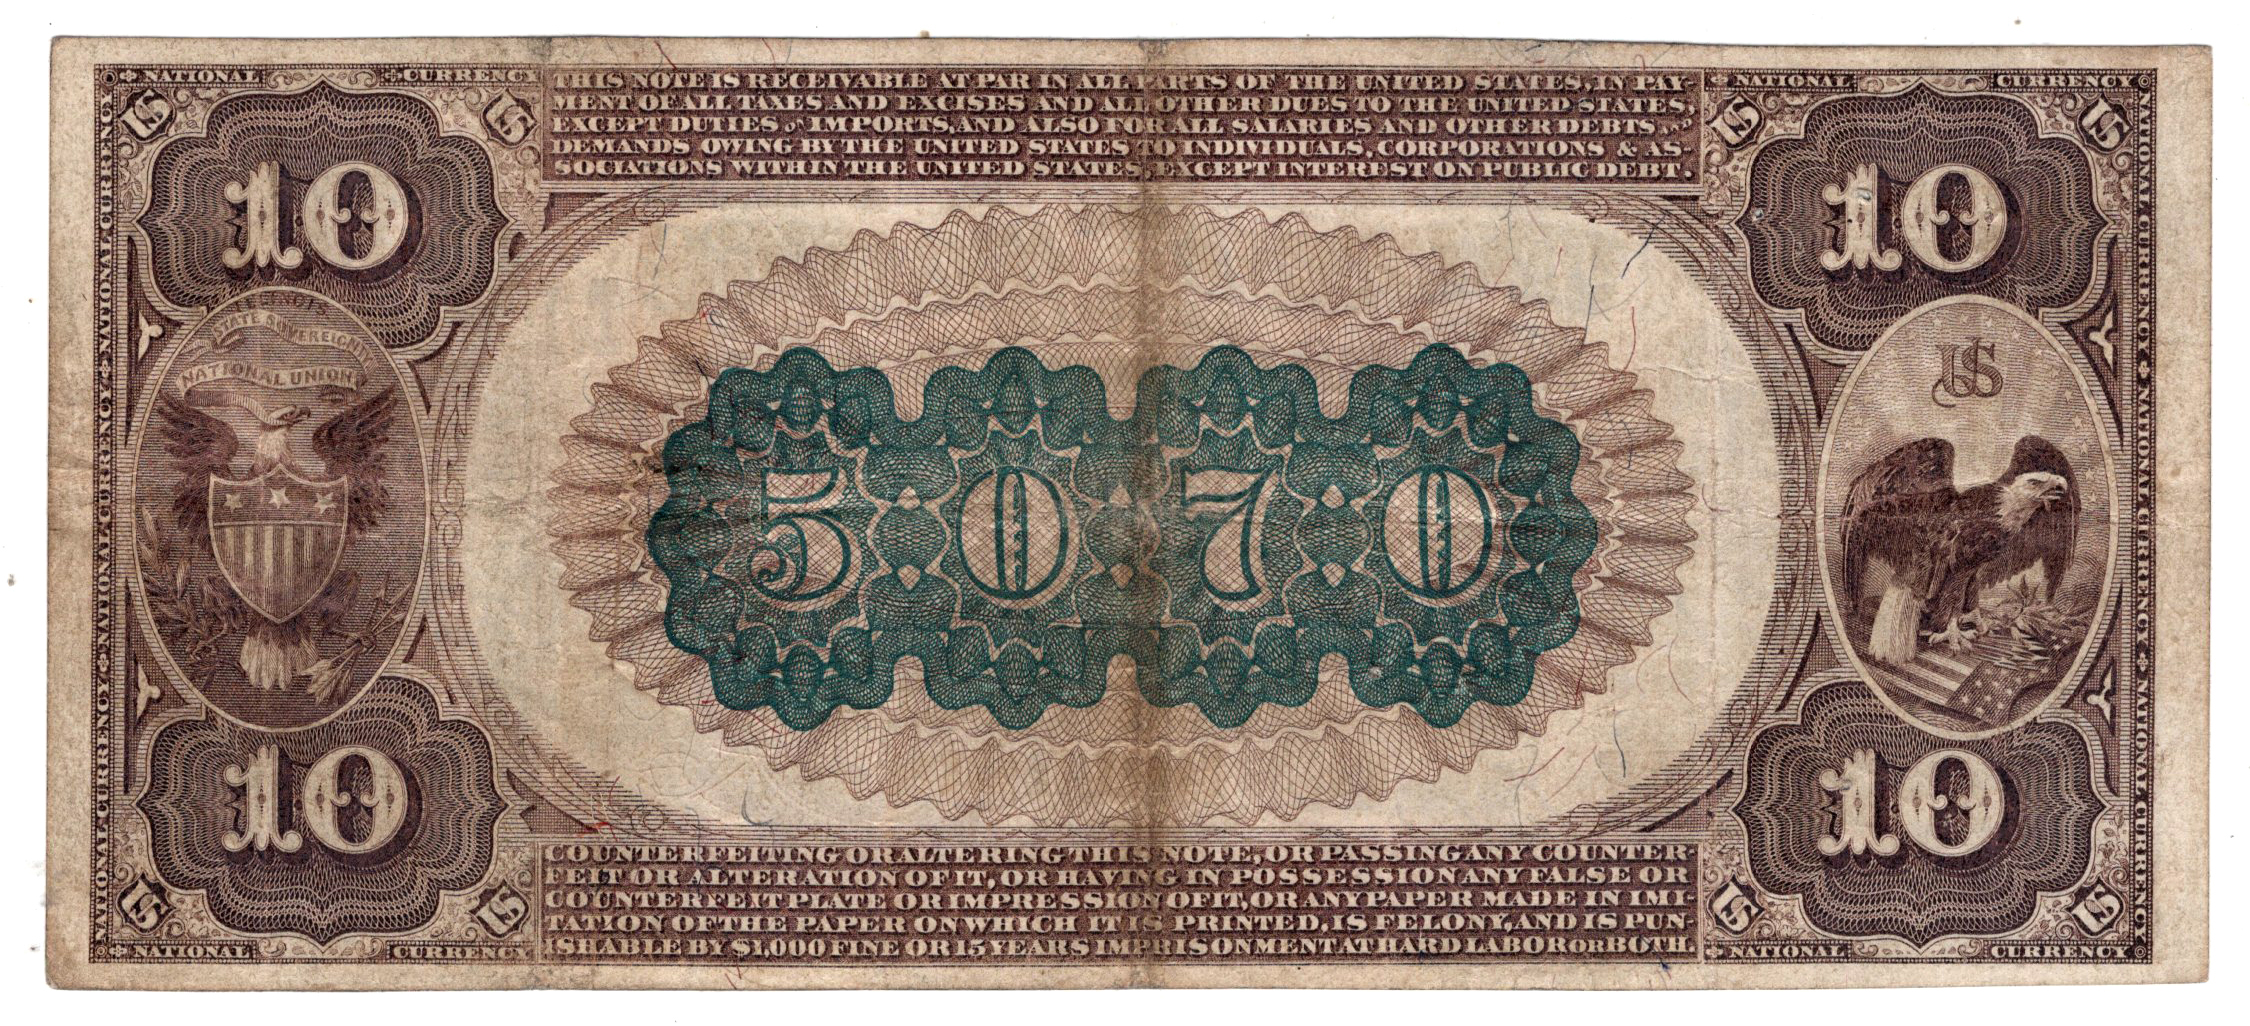 1882 $10 Brown Back - East St. Louis, IL Charter #5070 - VF